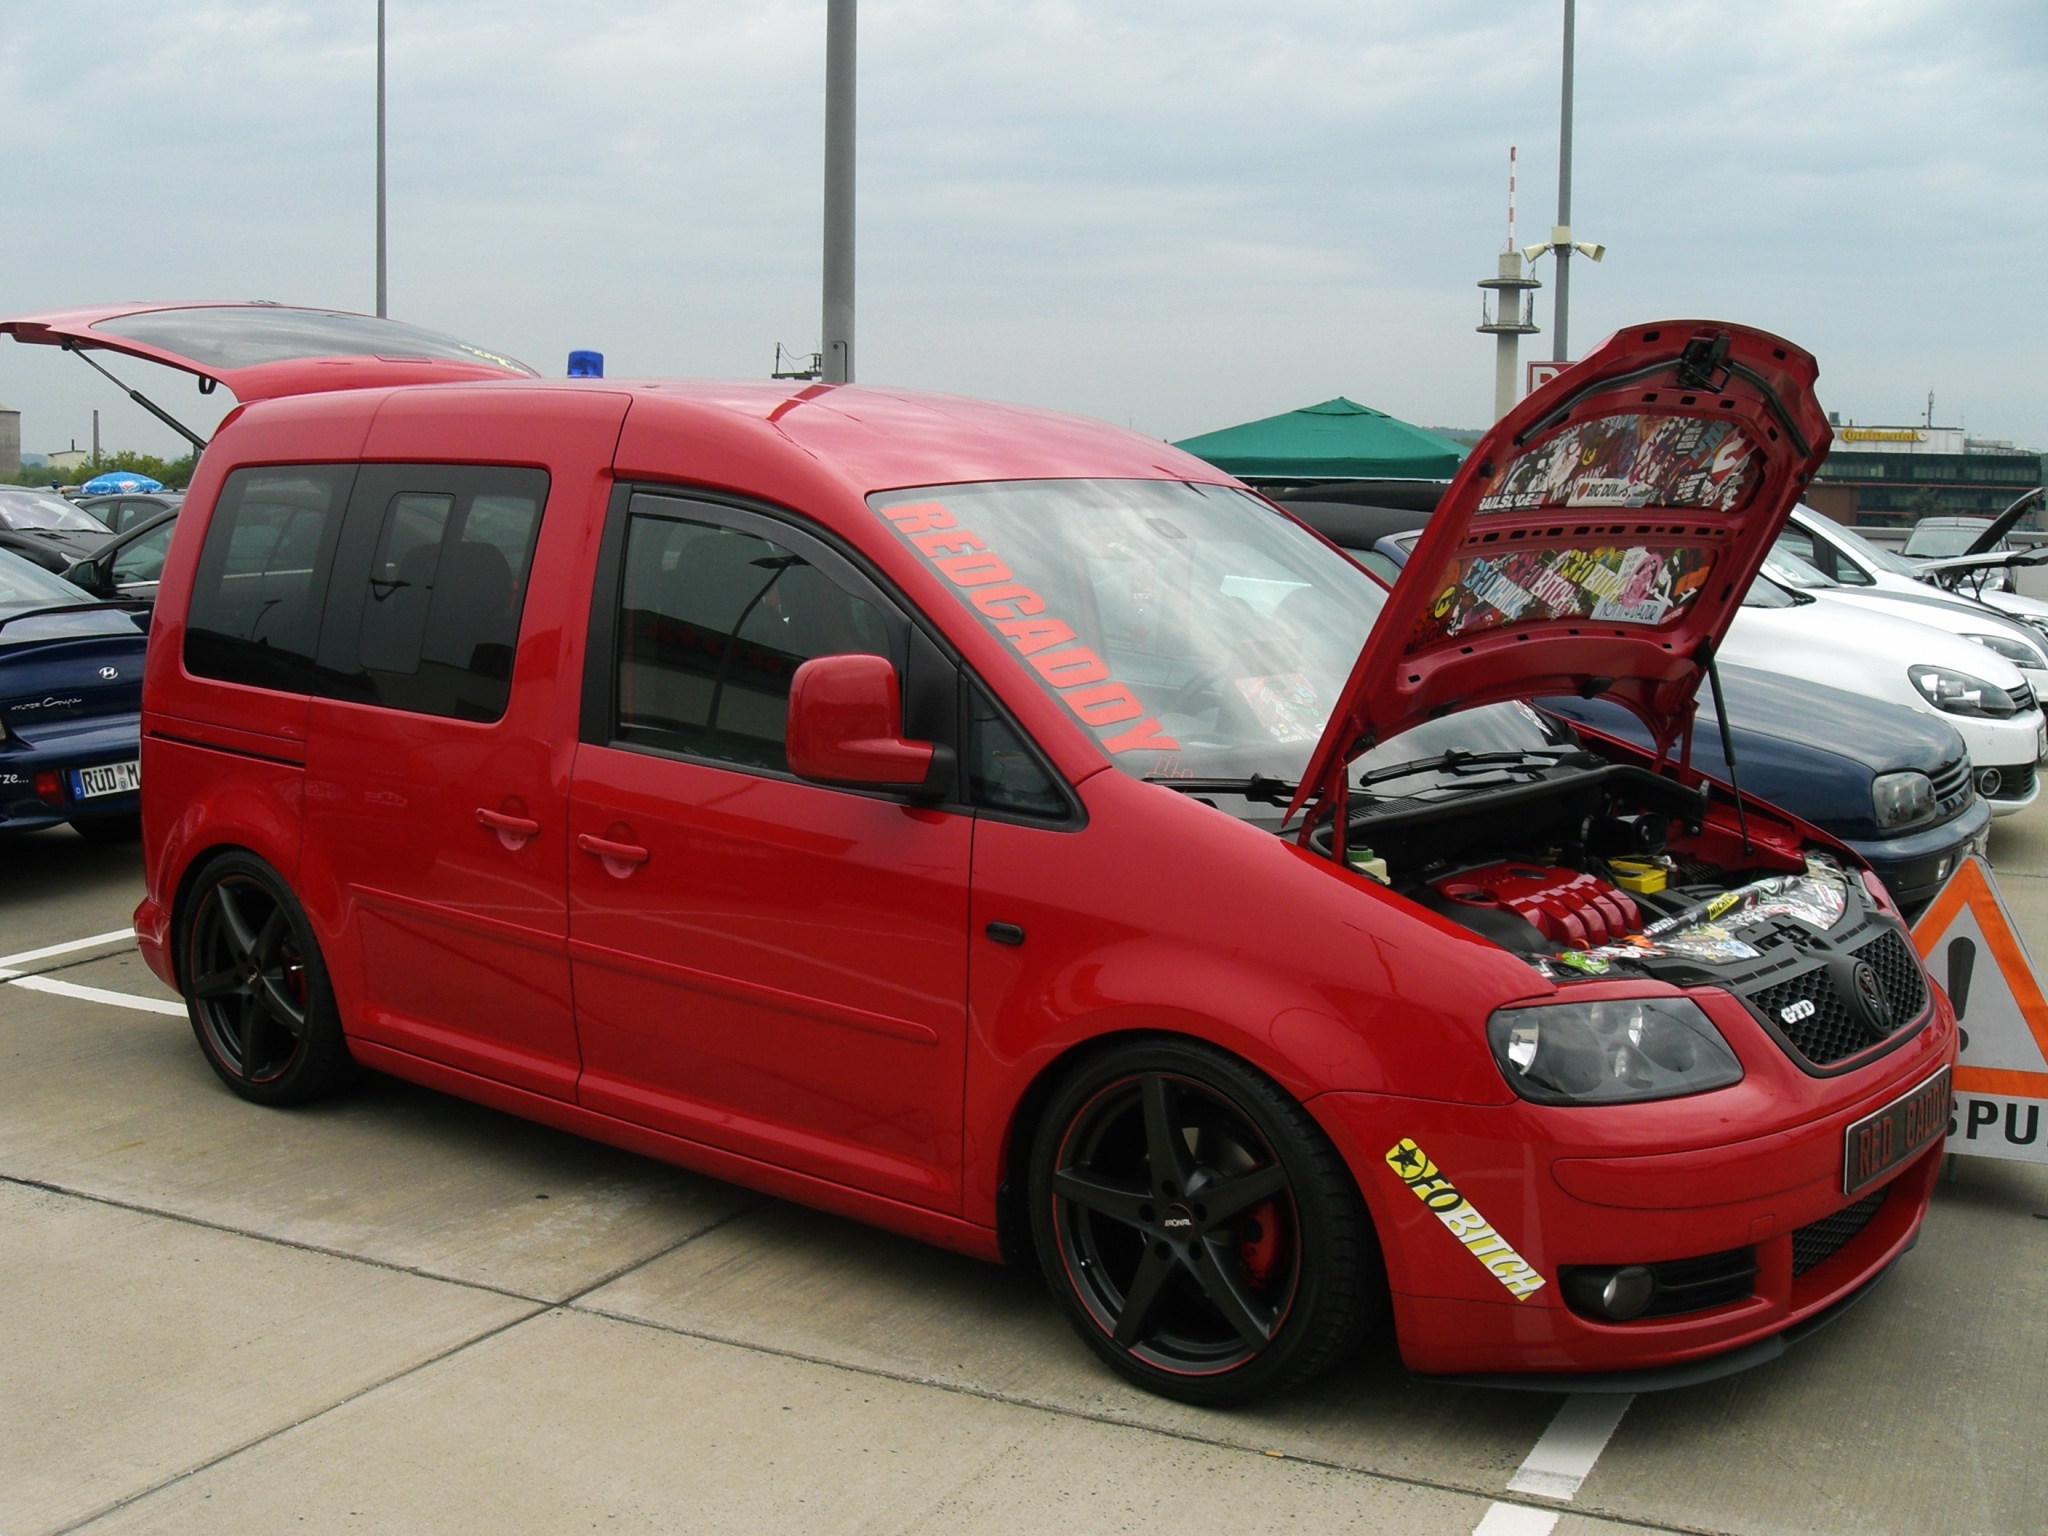 vw caddy 2k tuning 7 tuning. Black Bedroom Furniture Sets. Home Design Ideas